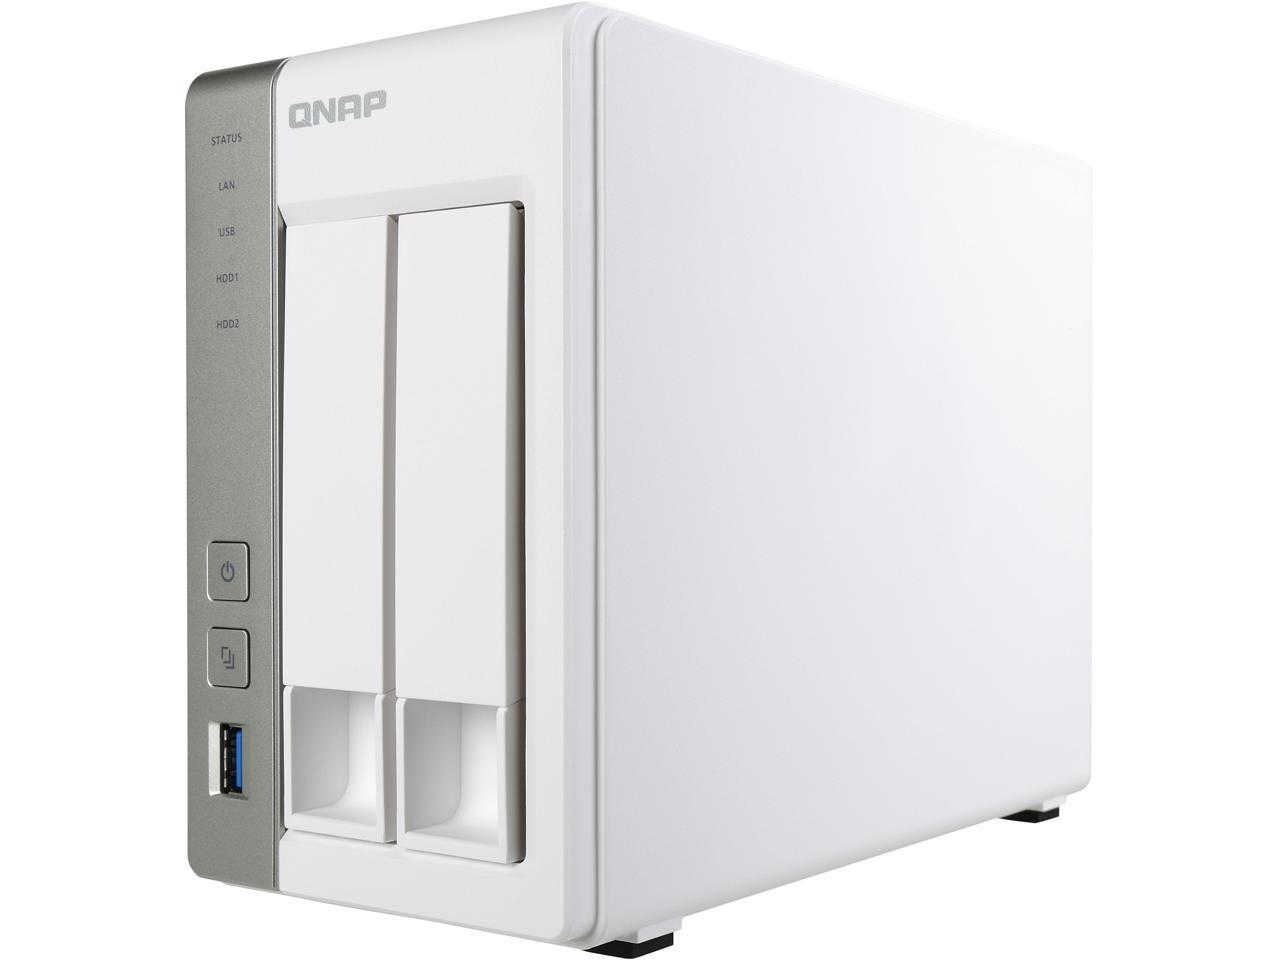 The NAS  (Network Attached Storage)